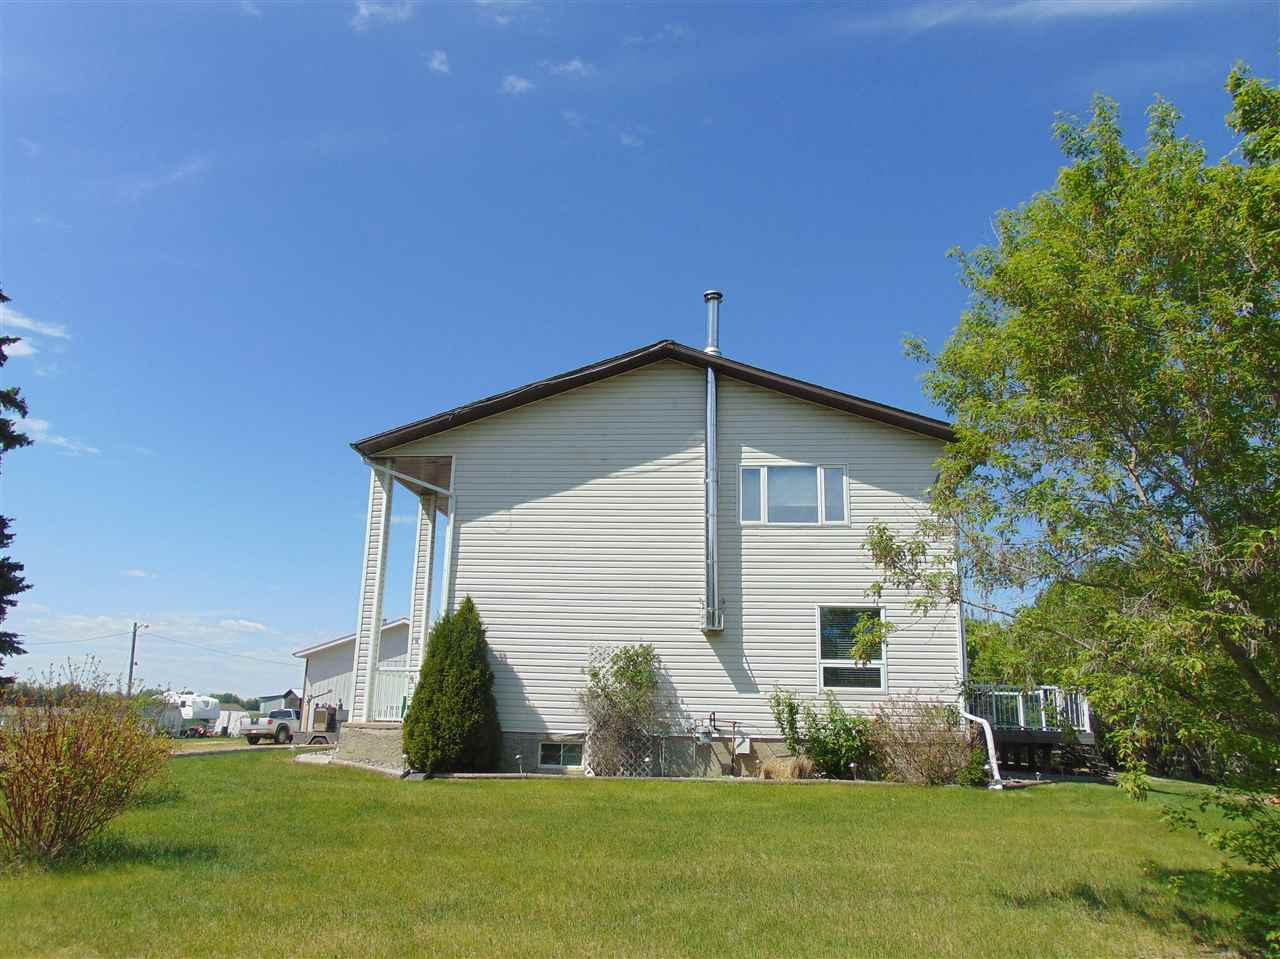 Photo 3: 61124 Rg Rd 253: Rural Westlock County House for sale : MLS(r) # E4065150